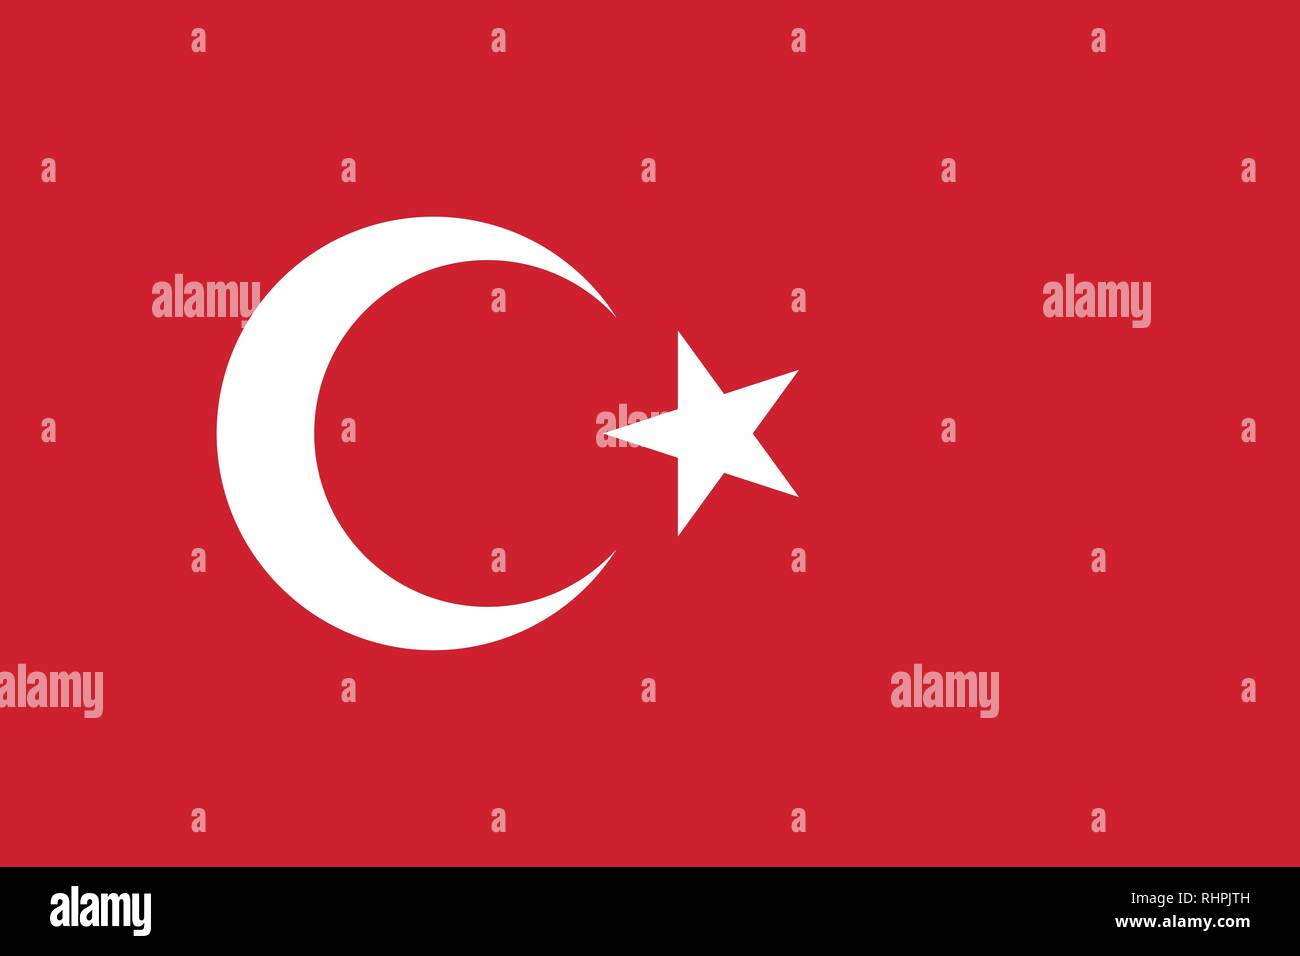 Vector image for Turkey flag. Based on the official and exact Turkish flag dimensions (3:2) & colors (186C and White) - Stock Vector